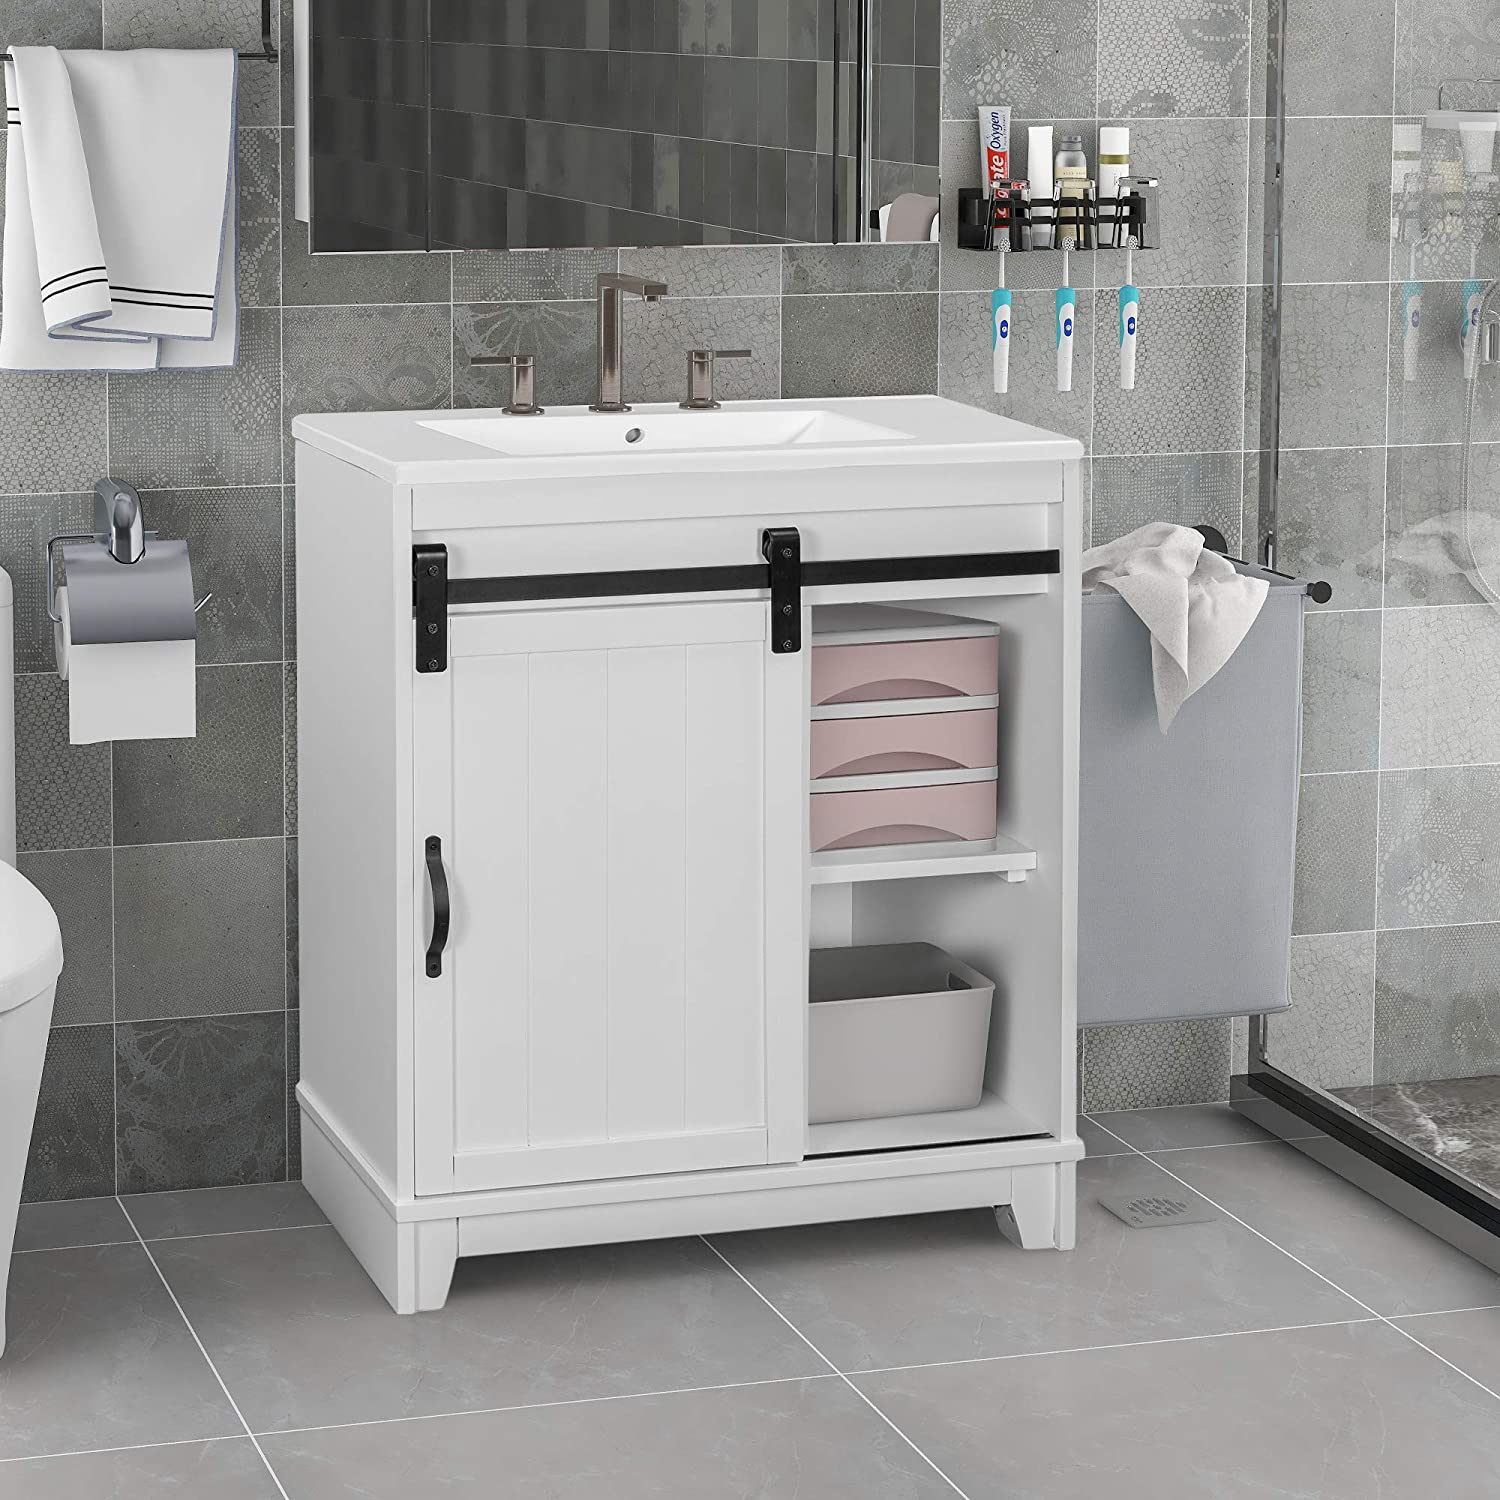 Amazon Com Free Standing Bathroom Vanity With Sliding Bars Door And White Sink Vanity Sink Combo Storage Vanity Cabinet Bathroom Sink Fully Assembled Except For The Door White Tools Home Improvement